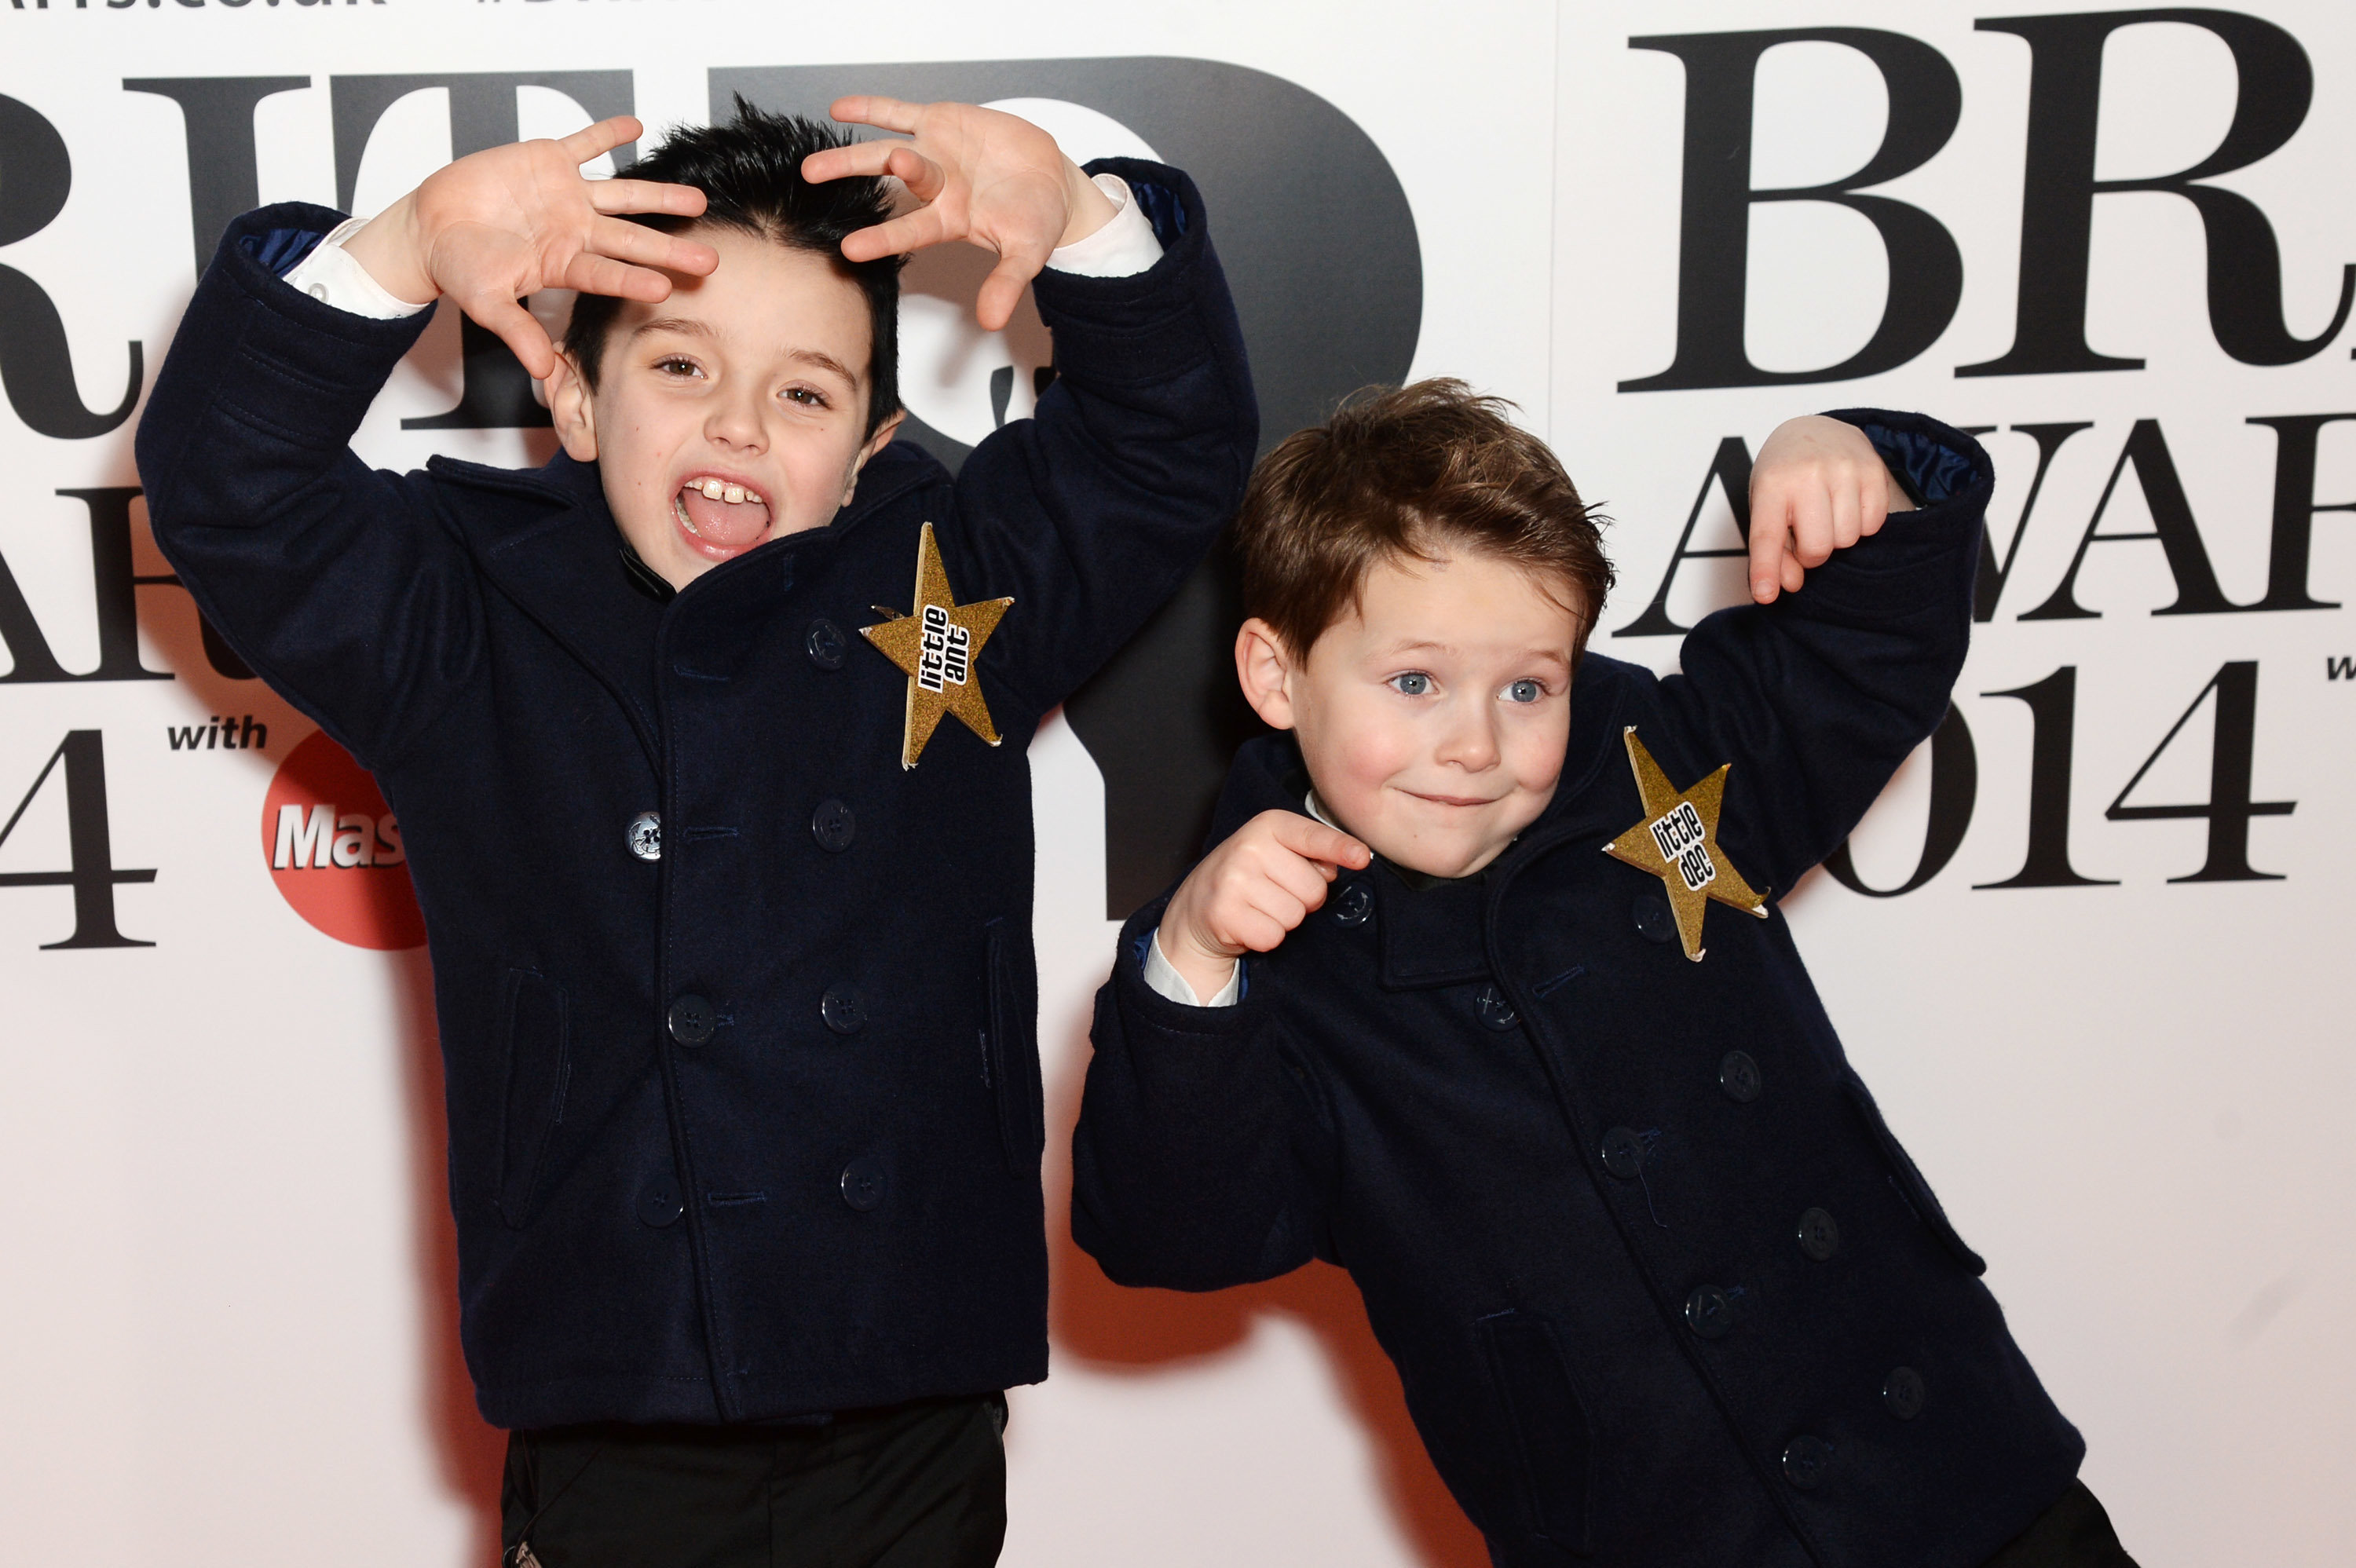 Little Ant And Dec Won't Be Returning To 'Saturday Night Takeaway' – And There's No Plans To Replace Them